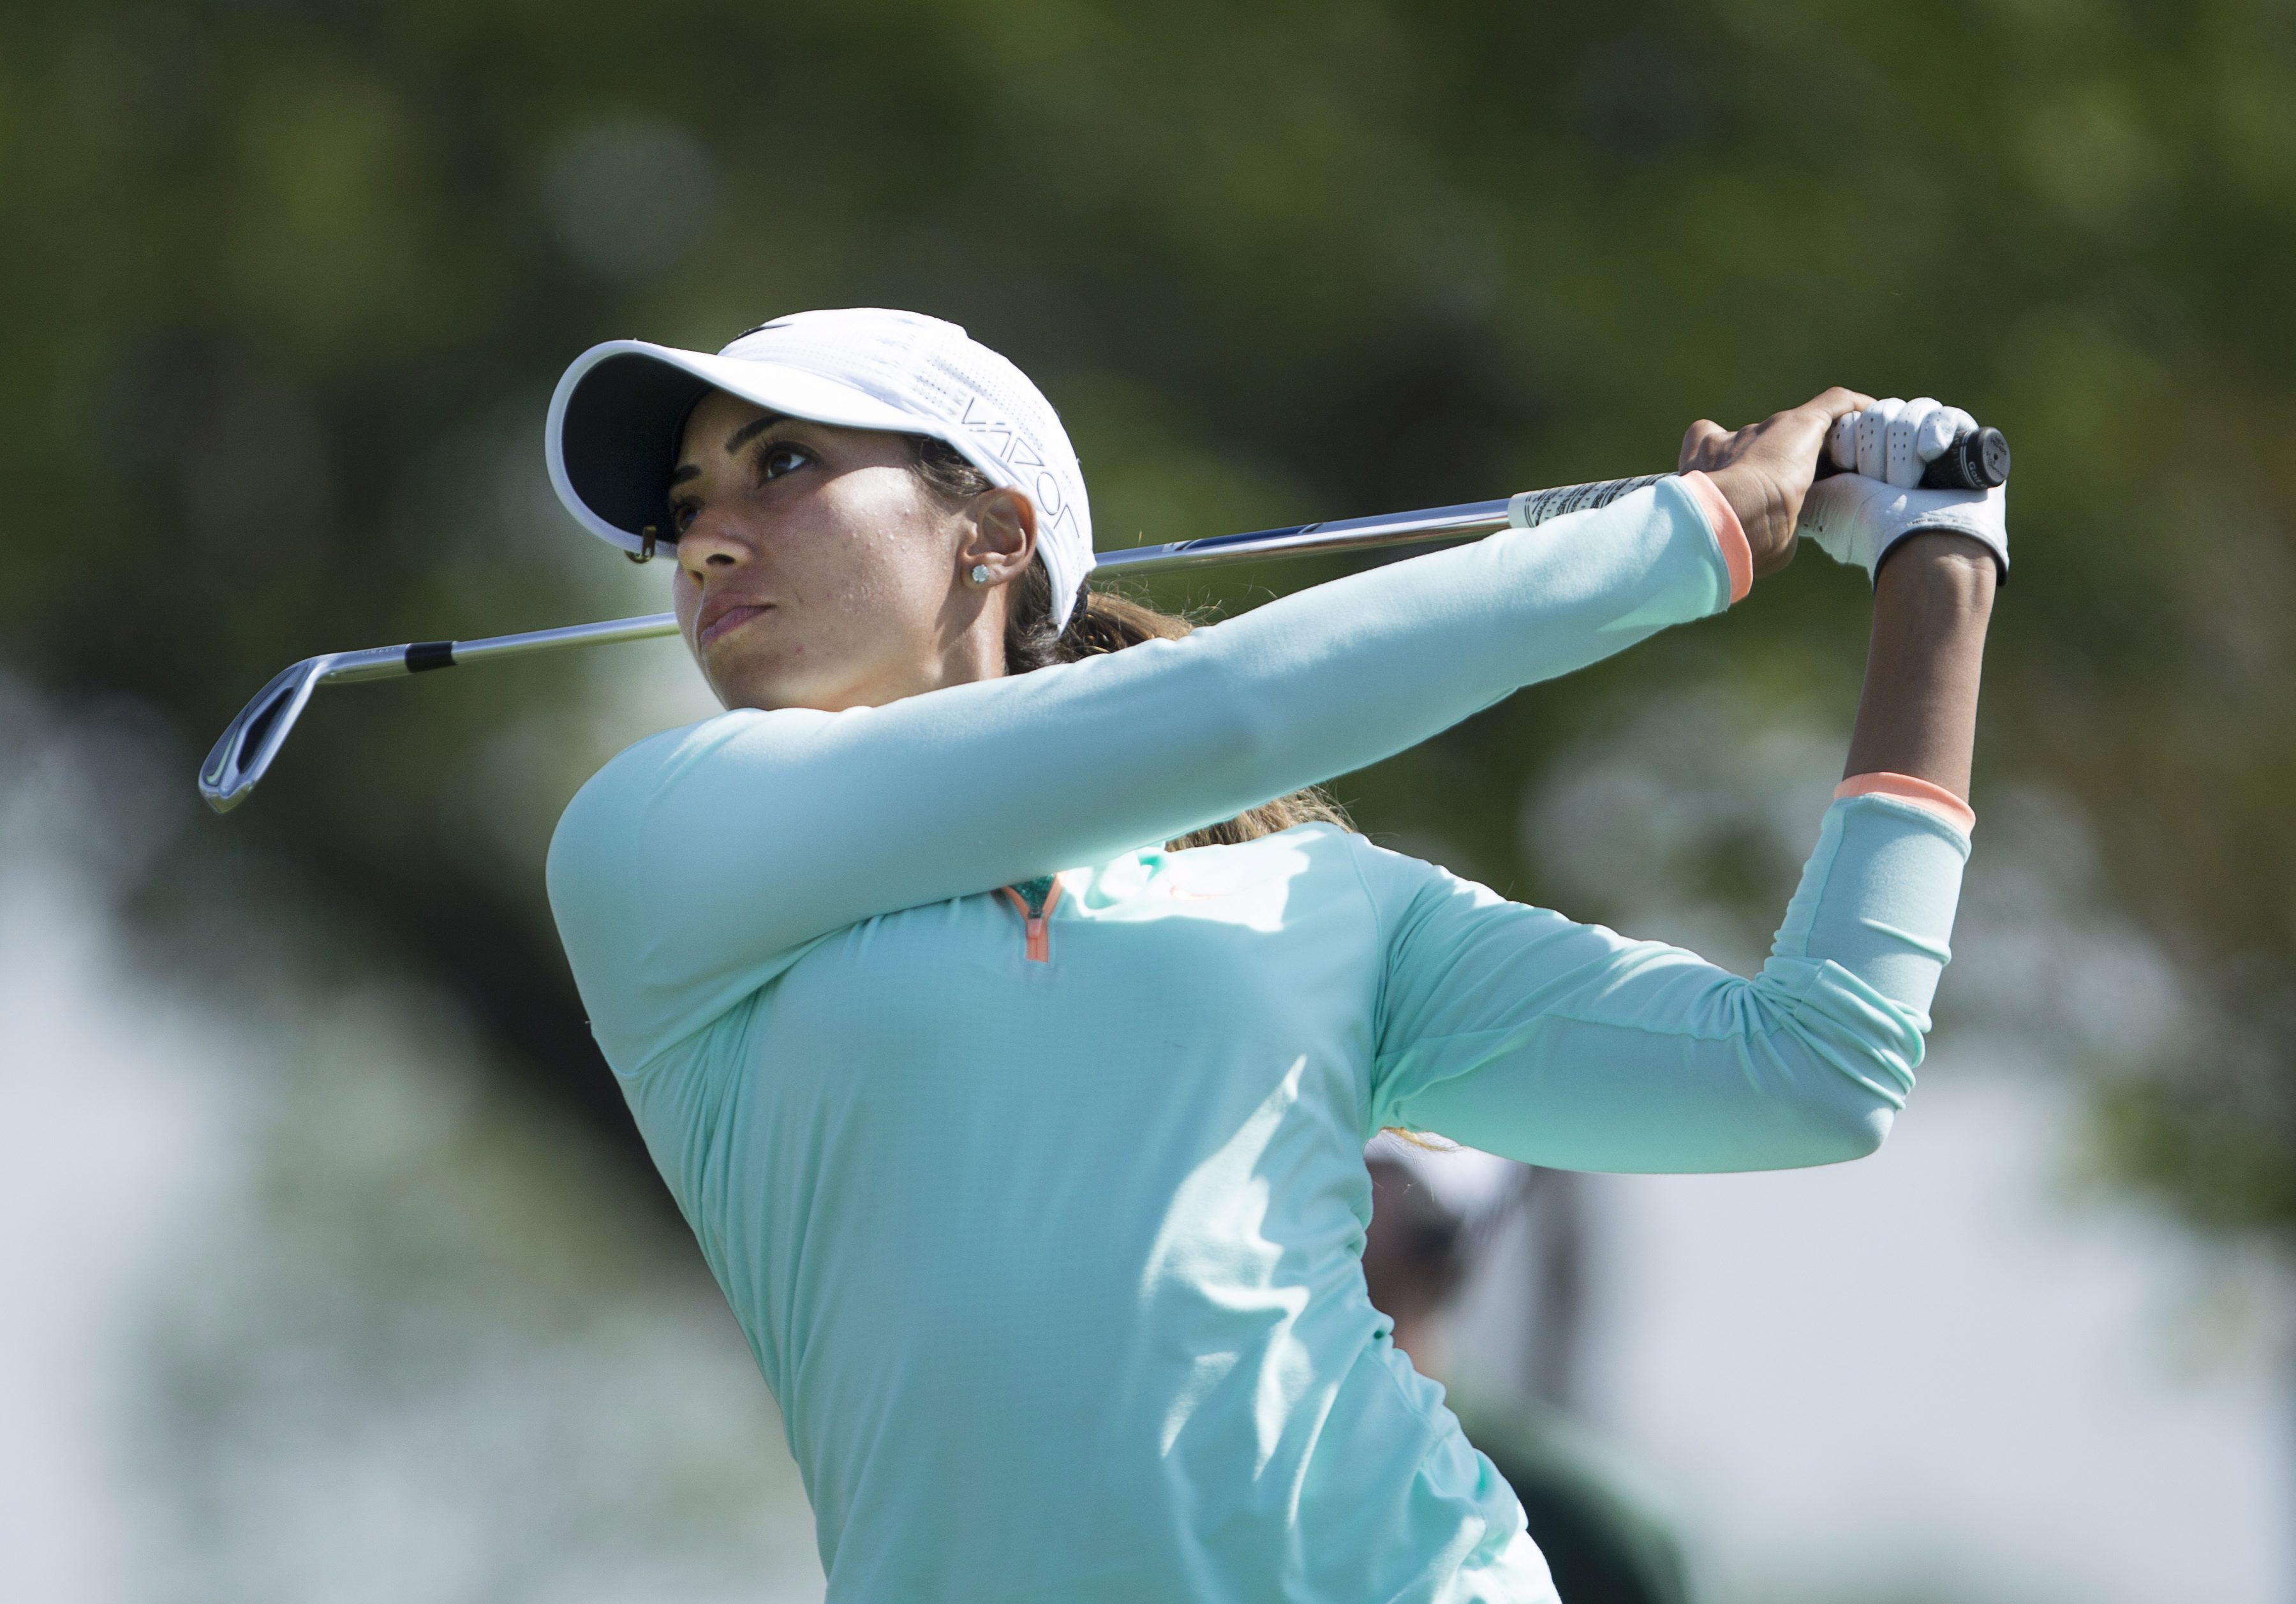 Cheyenne Woods watches her tee shot from the 13th tee during the first round of the Manulife LPGA Classic golf tournament, Thursday, June 4, 2015, in Cambridge, Ontario. (Peter Power/The Canadian Press via